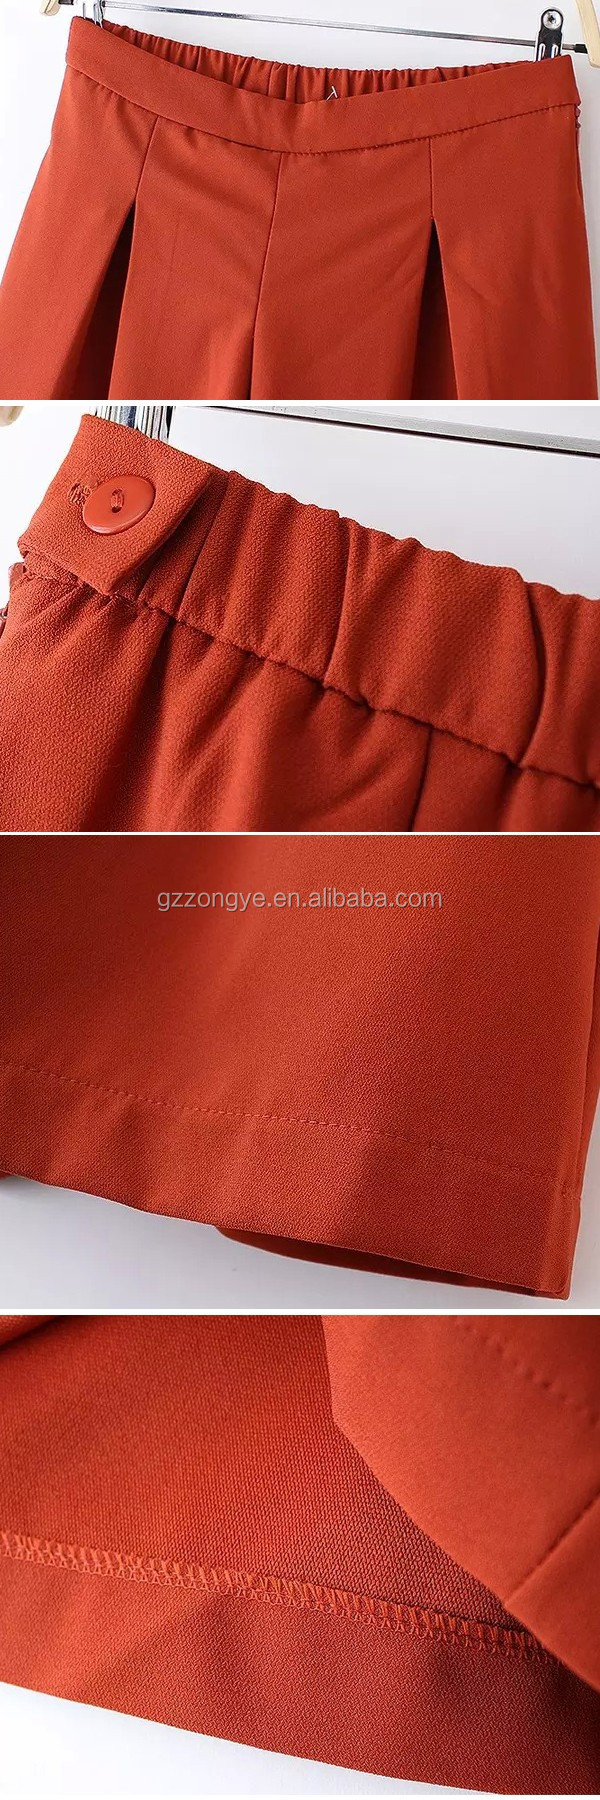 High quality Dongfan women's red wide leg red pants